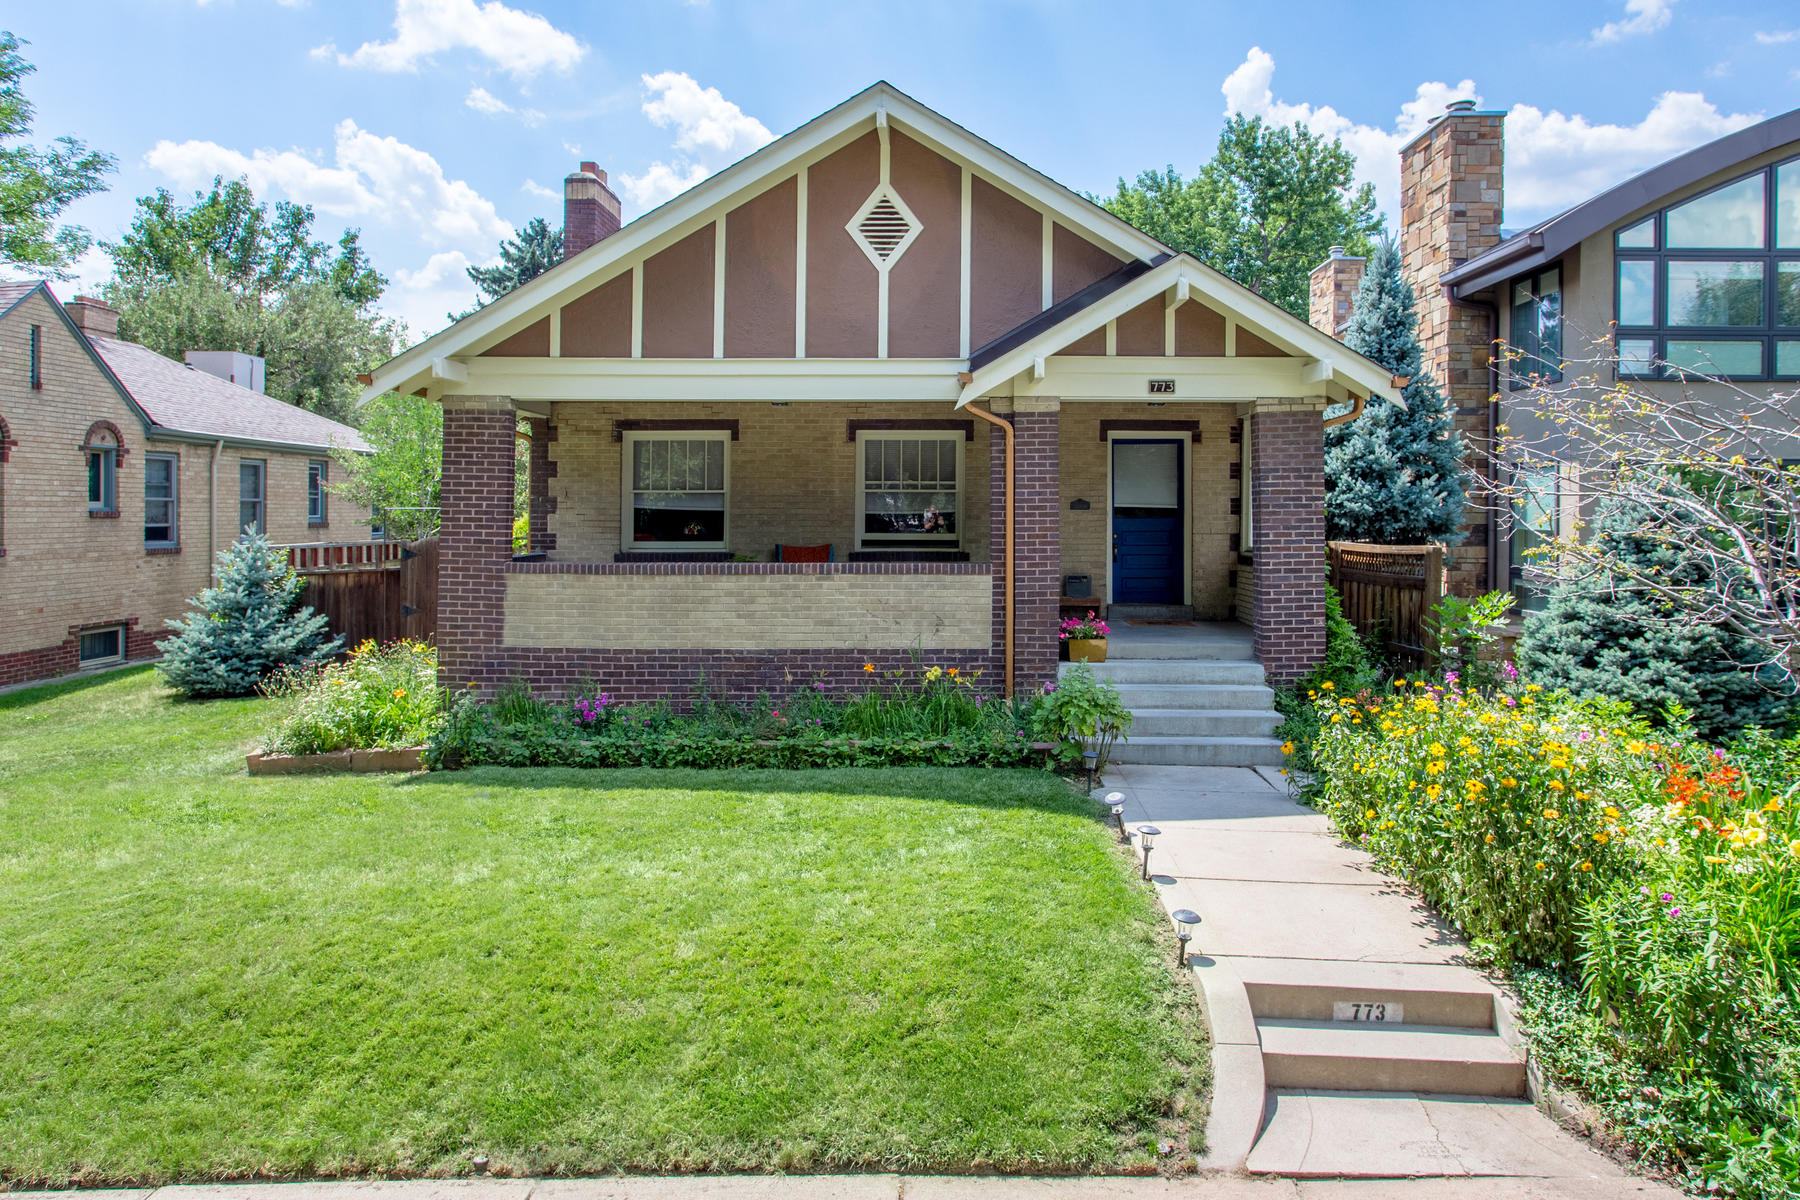 Single Family Home for Active at Congress Park Bungalow with Relaxing Outdoor Pool 773 Clayton Street Denver, Colorado 80206 United States